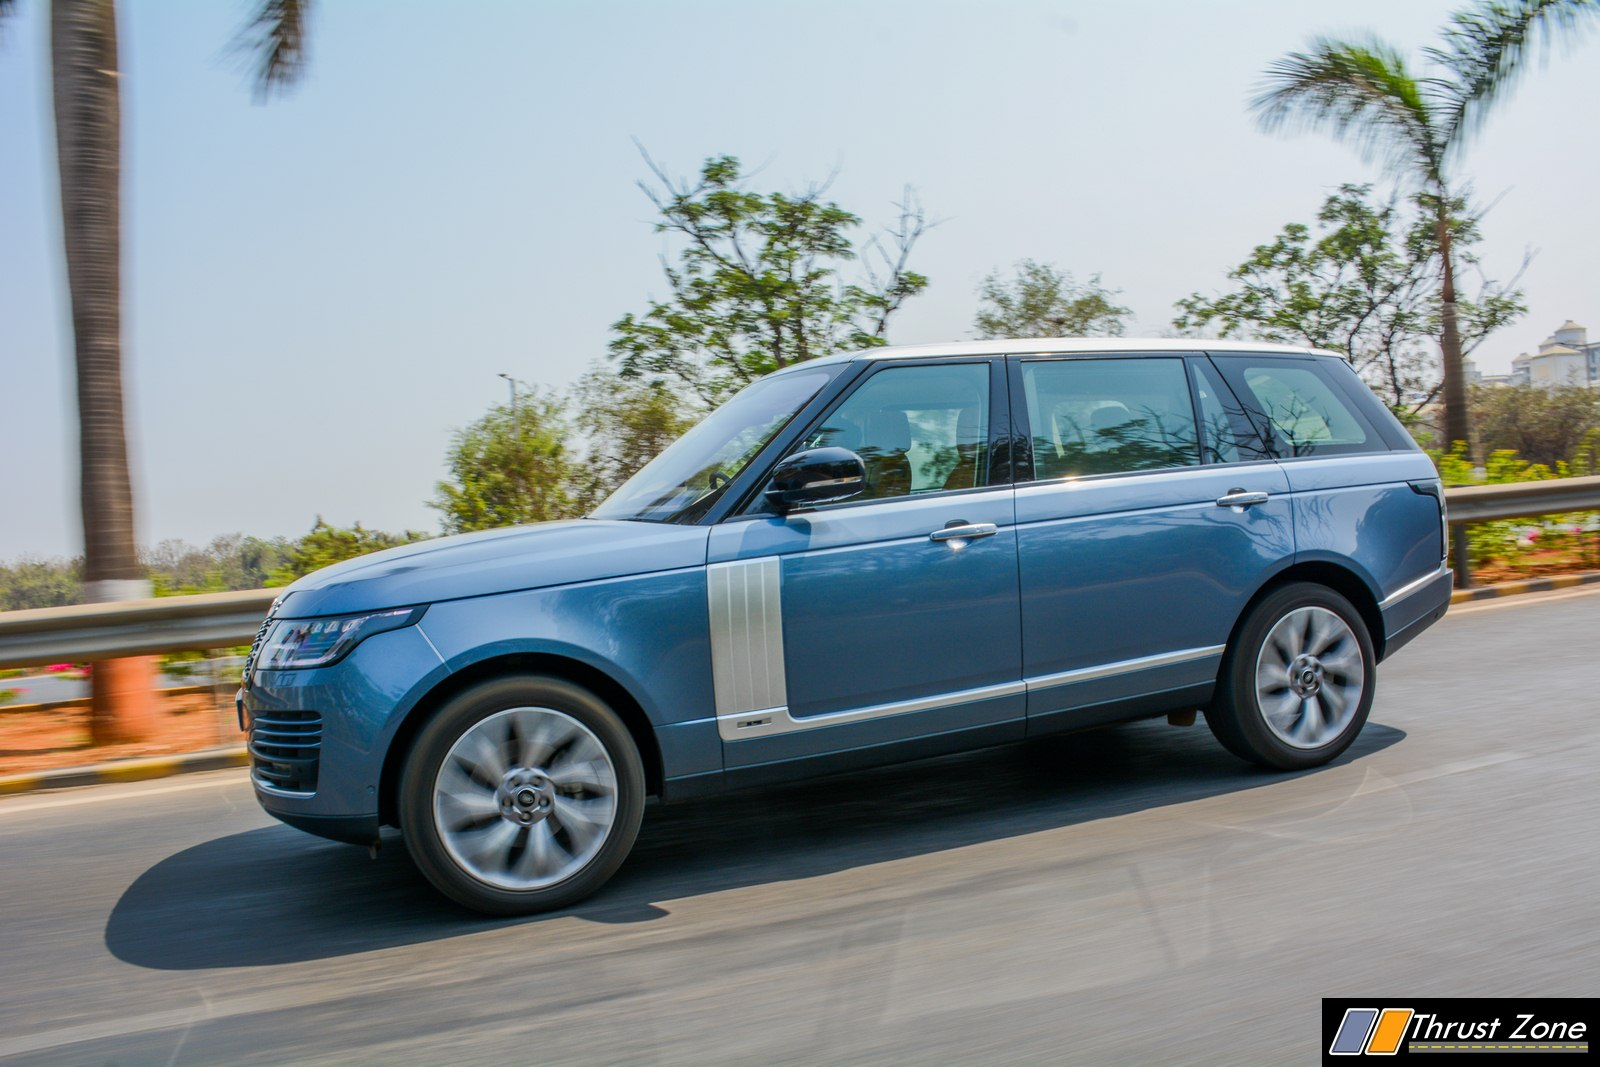 2019-Range-Rover-India-Diesel-V6-Review-5